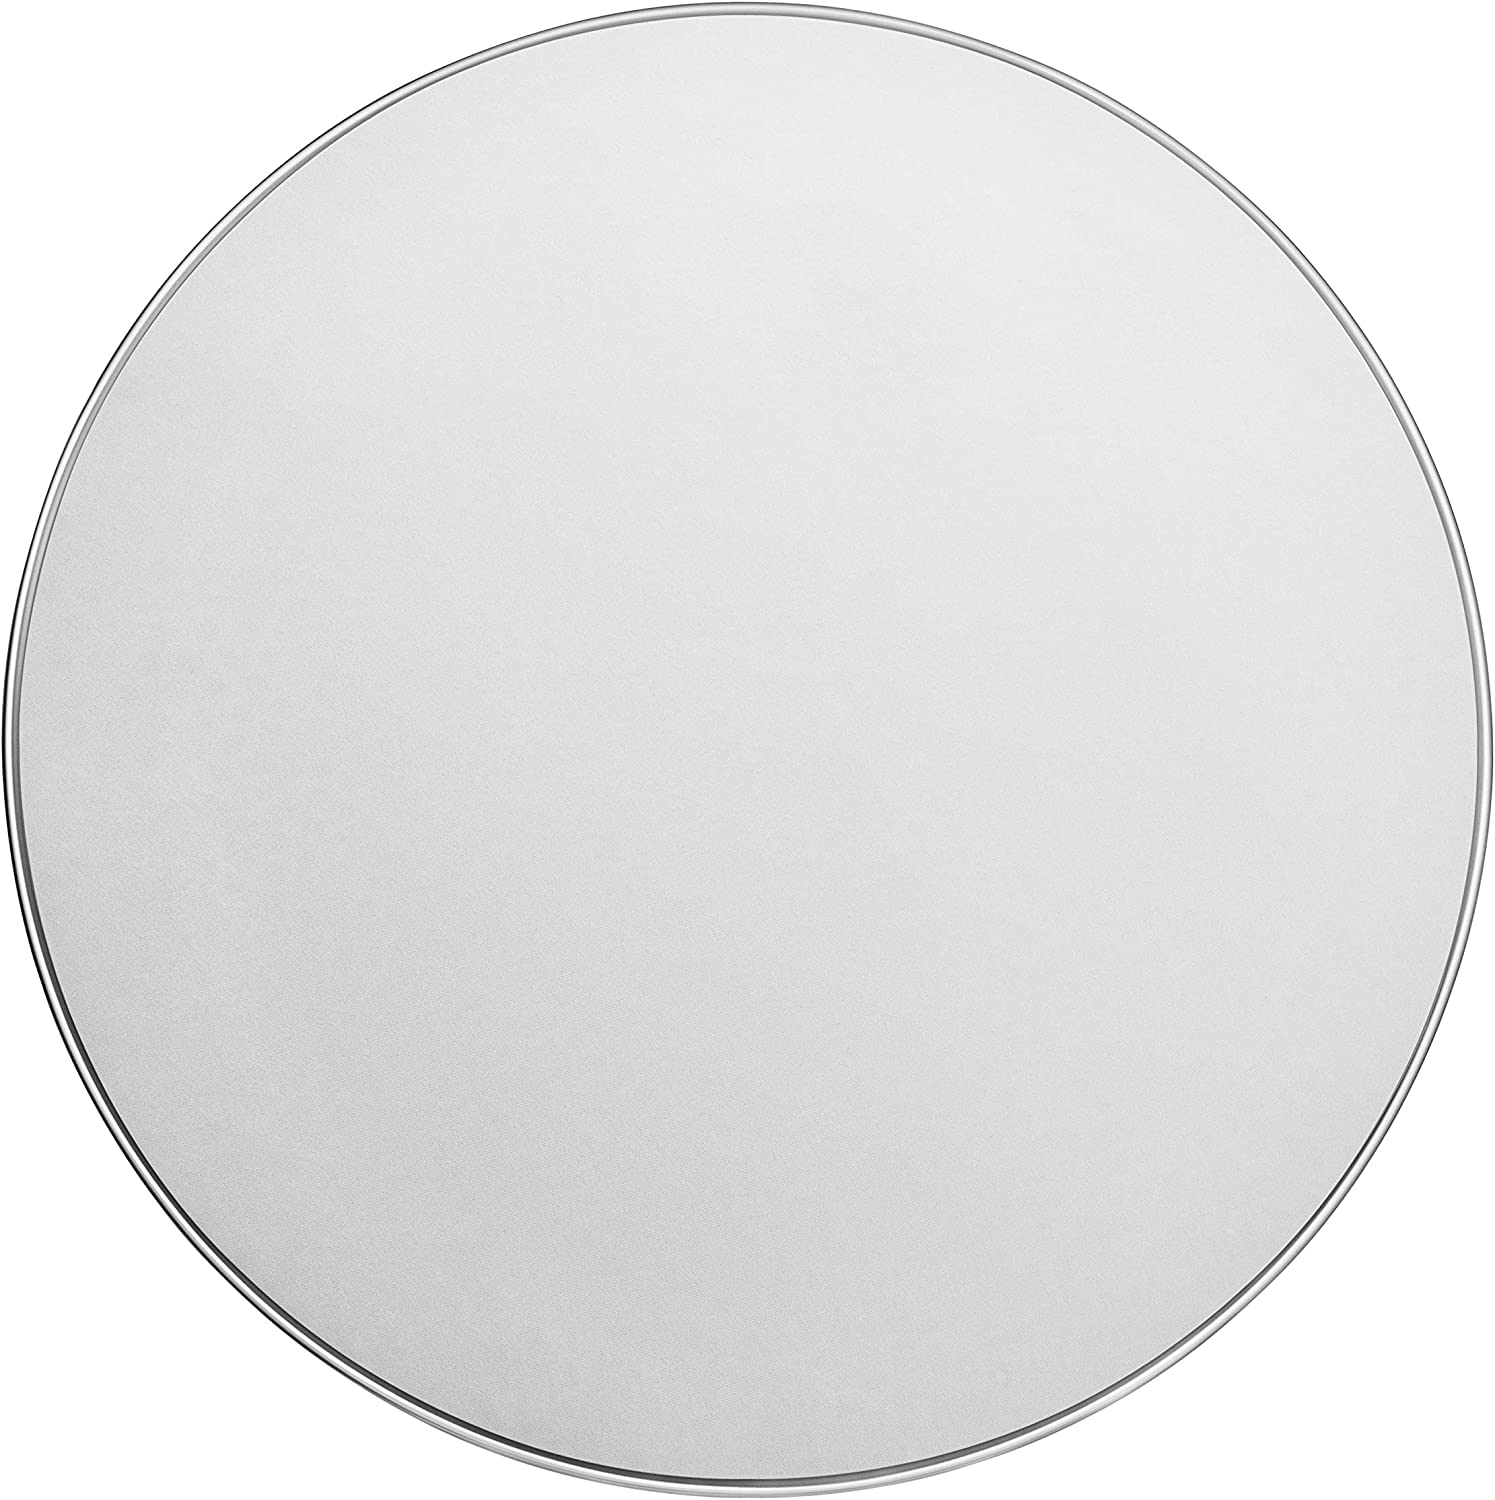 Bang & Olufsen Beoplay A9 Exchangeable Cover - White - 1605525